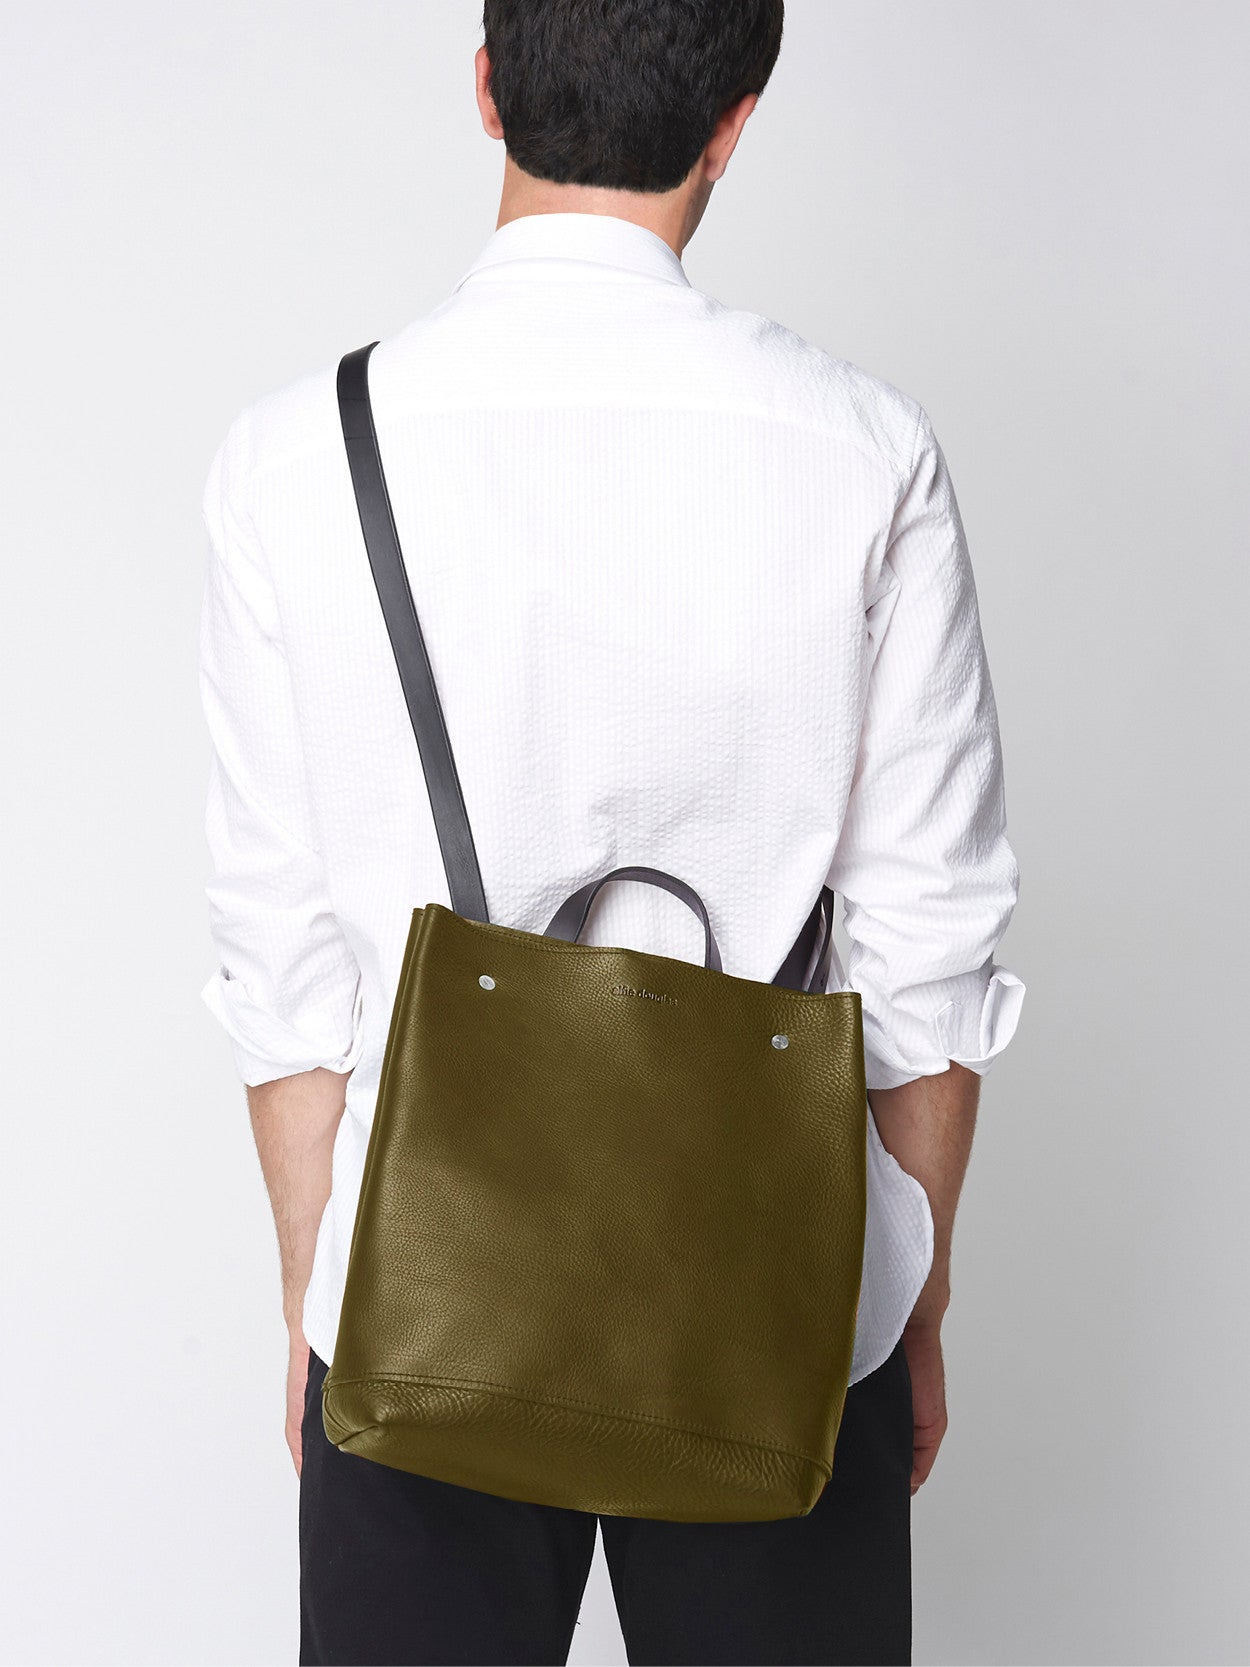 Alfie Douglas Handmade in England leather convertible shoulder bag and backpack